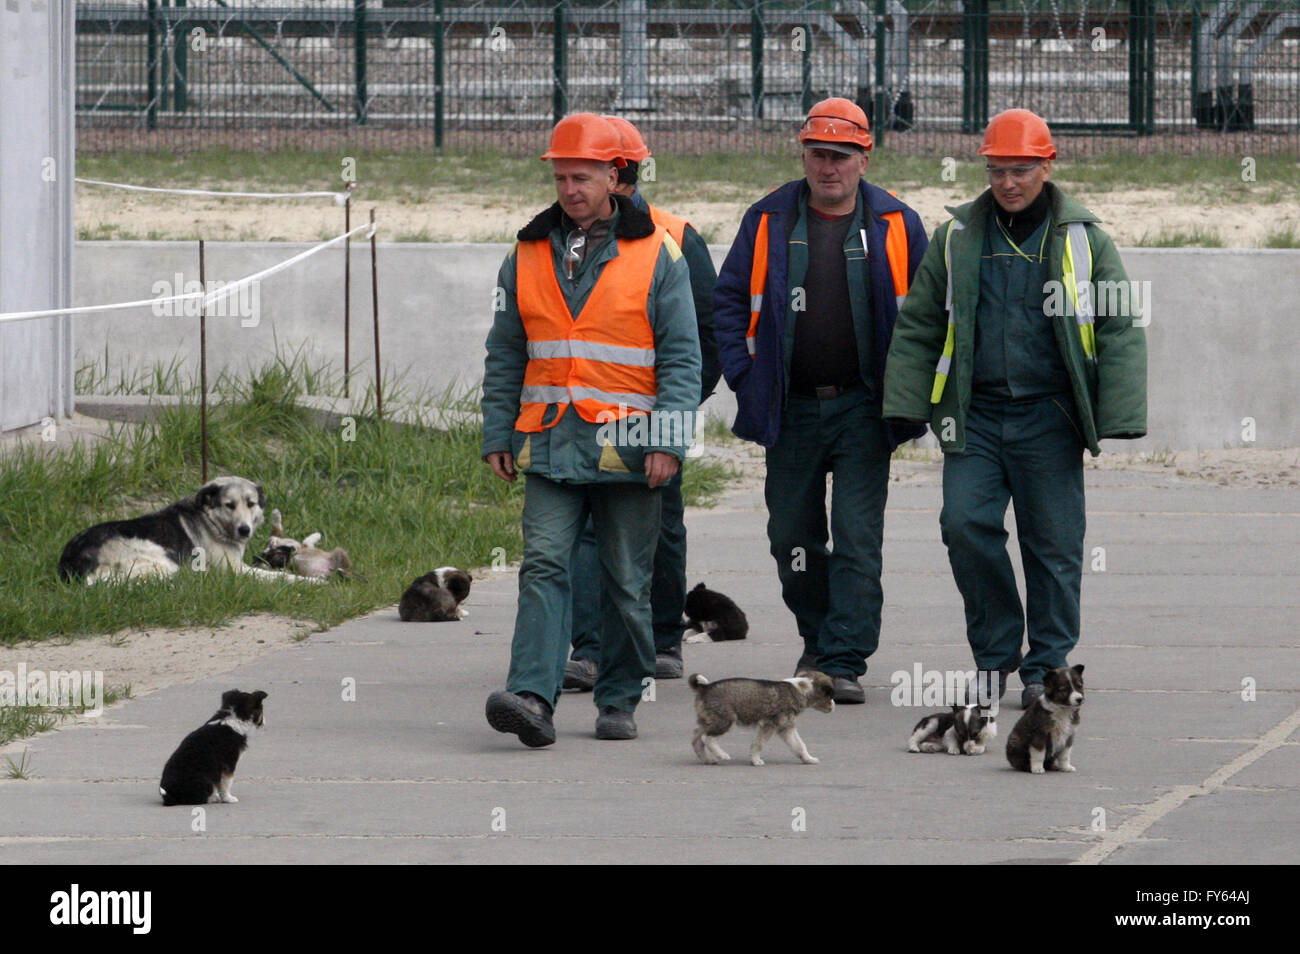 April 22, 2016 - Workers are seen near nuclear-fuel storage facility next to the Chernobyl Nuclear Power plant, - Stock Image